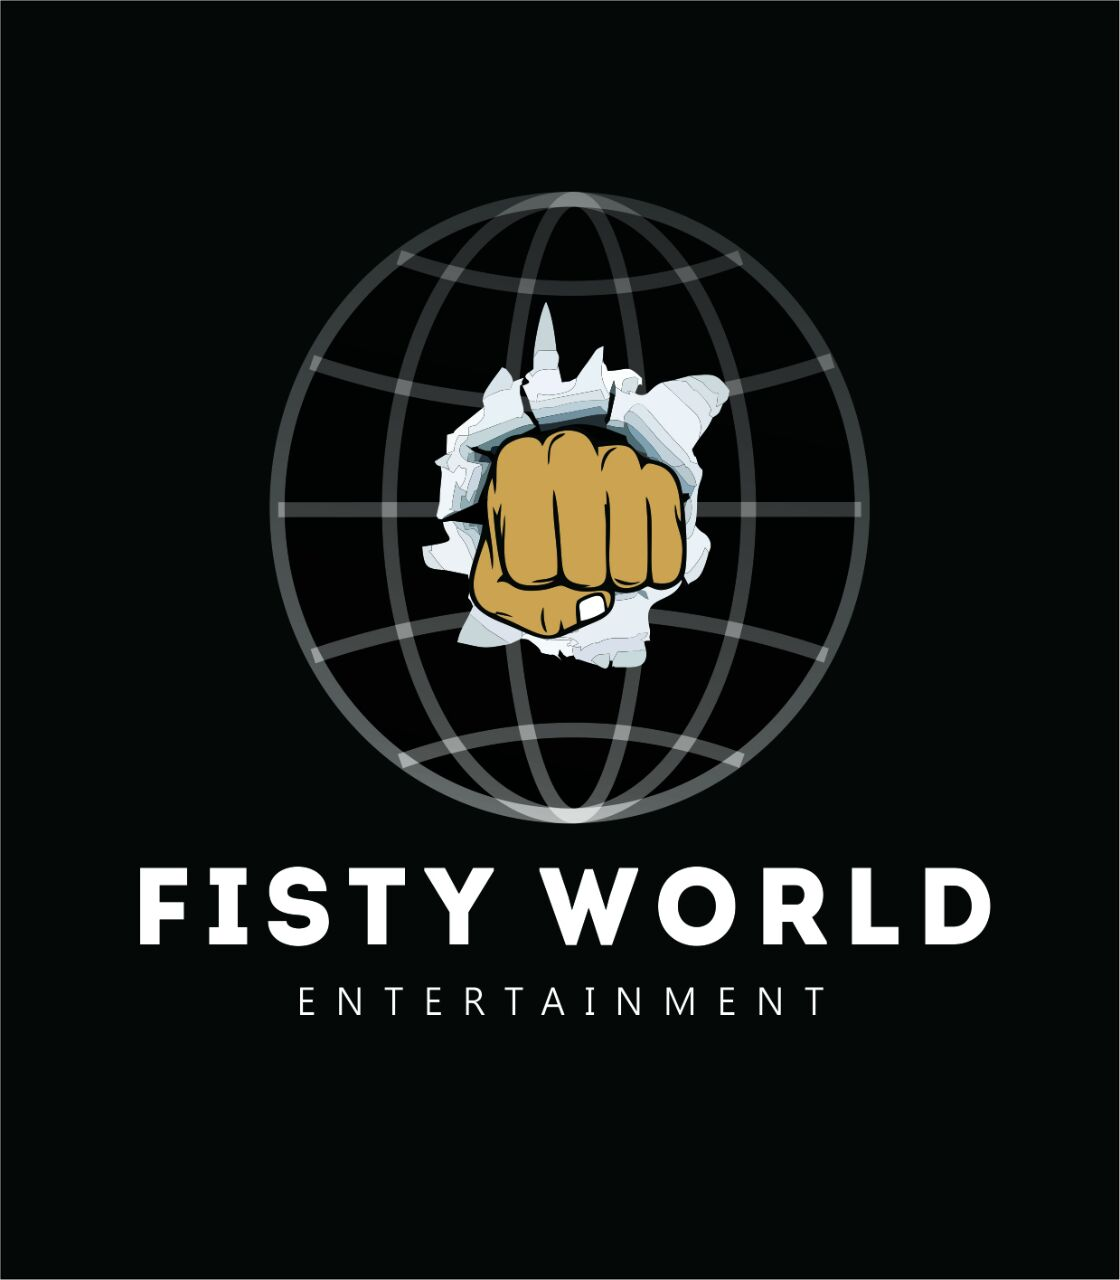 FISTY WORLD ENTERTAINMENT